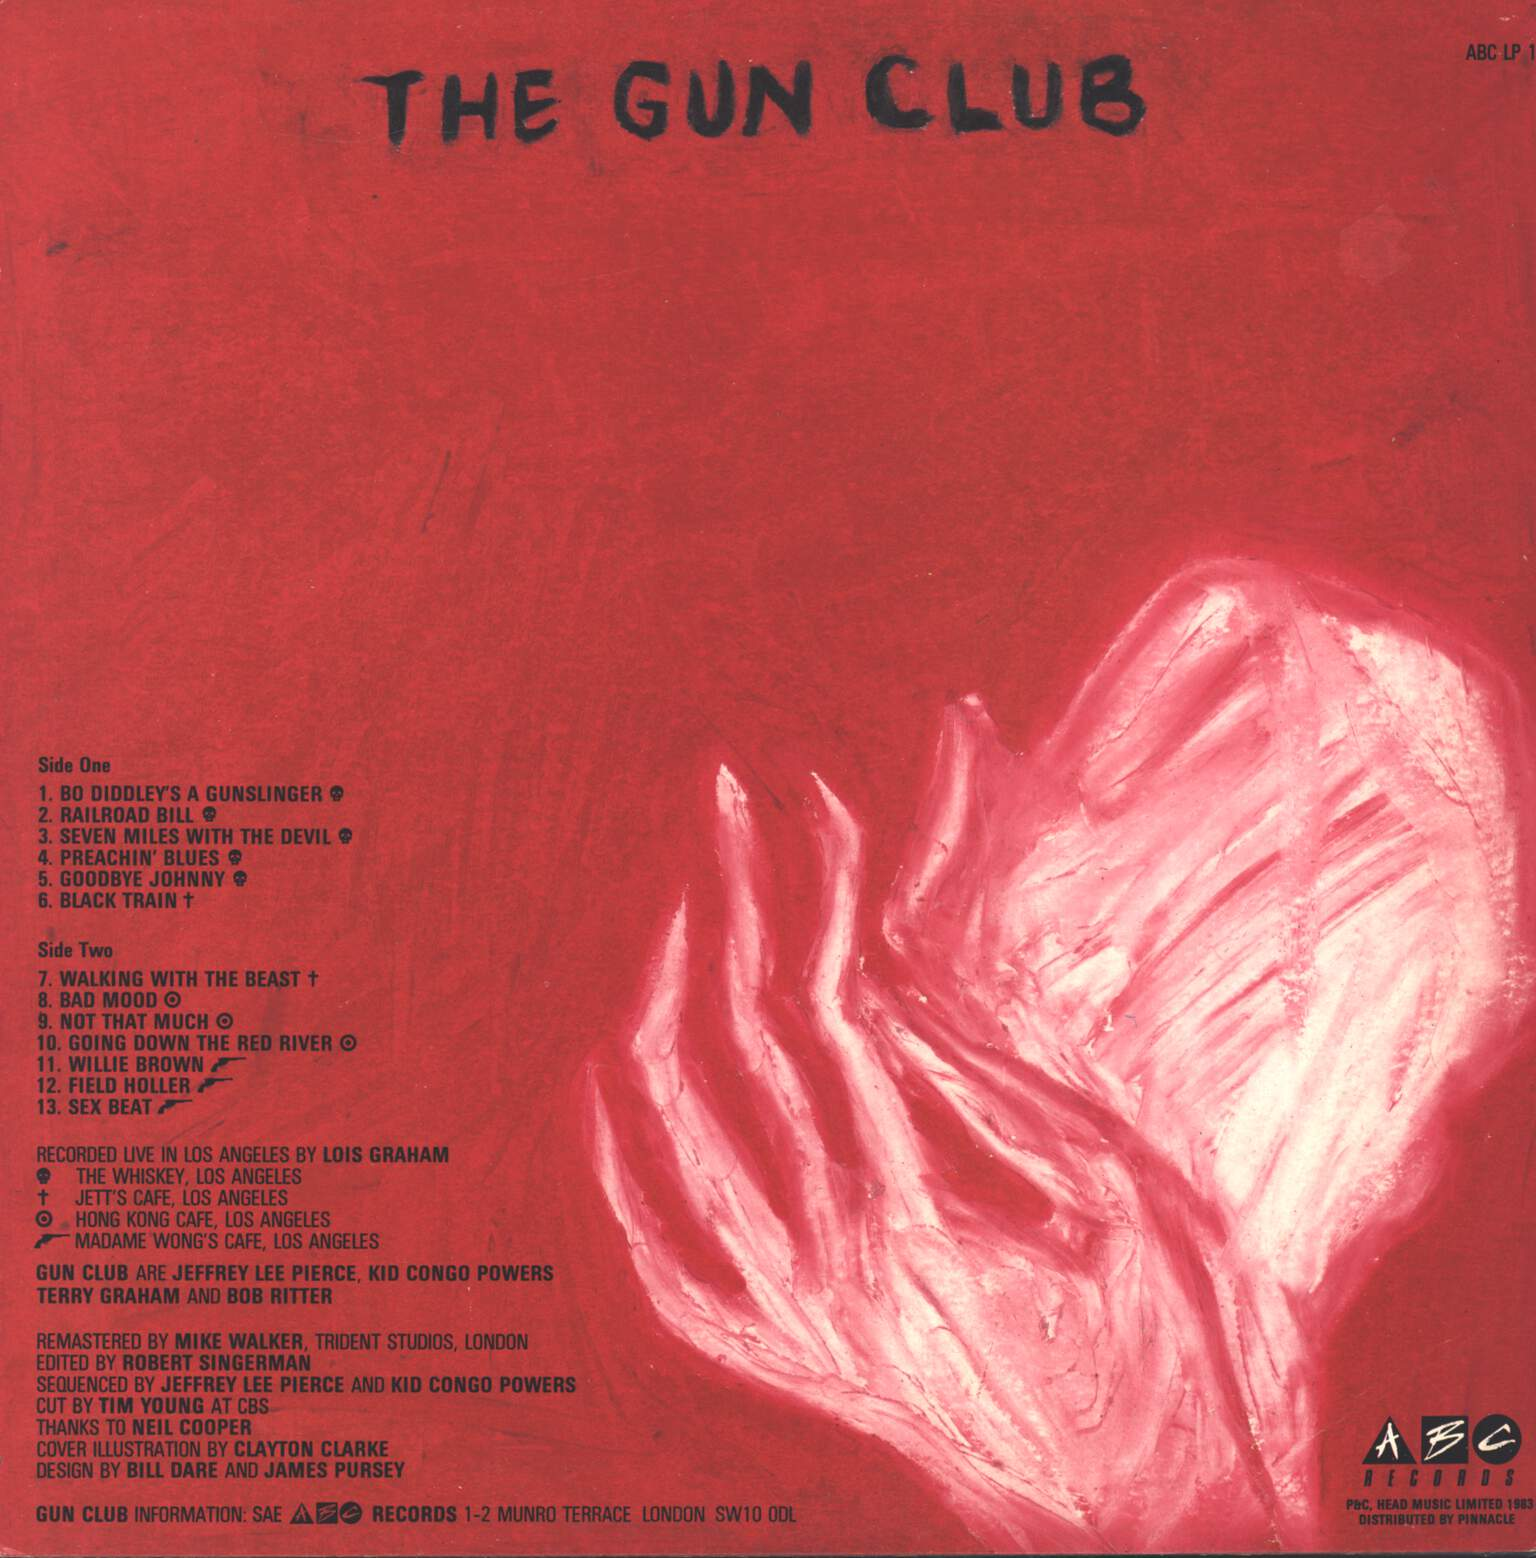 The Gun Club: The Birth, The Death, The Ghost, LP (Vinyl)